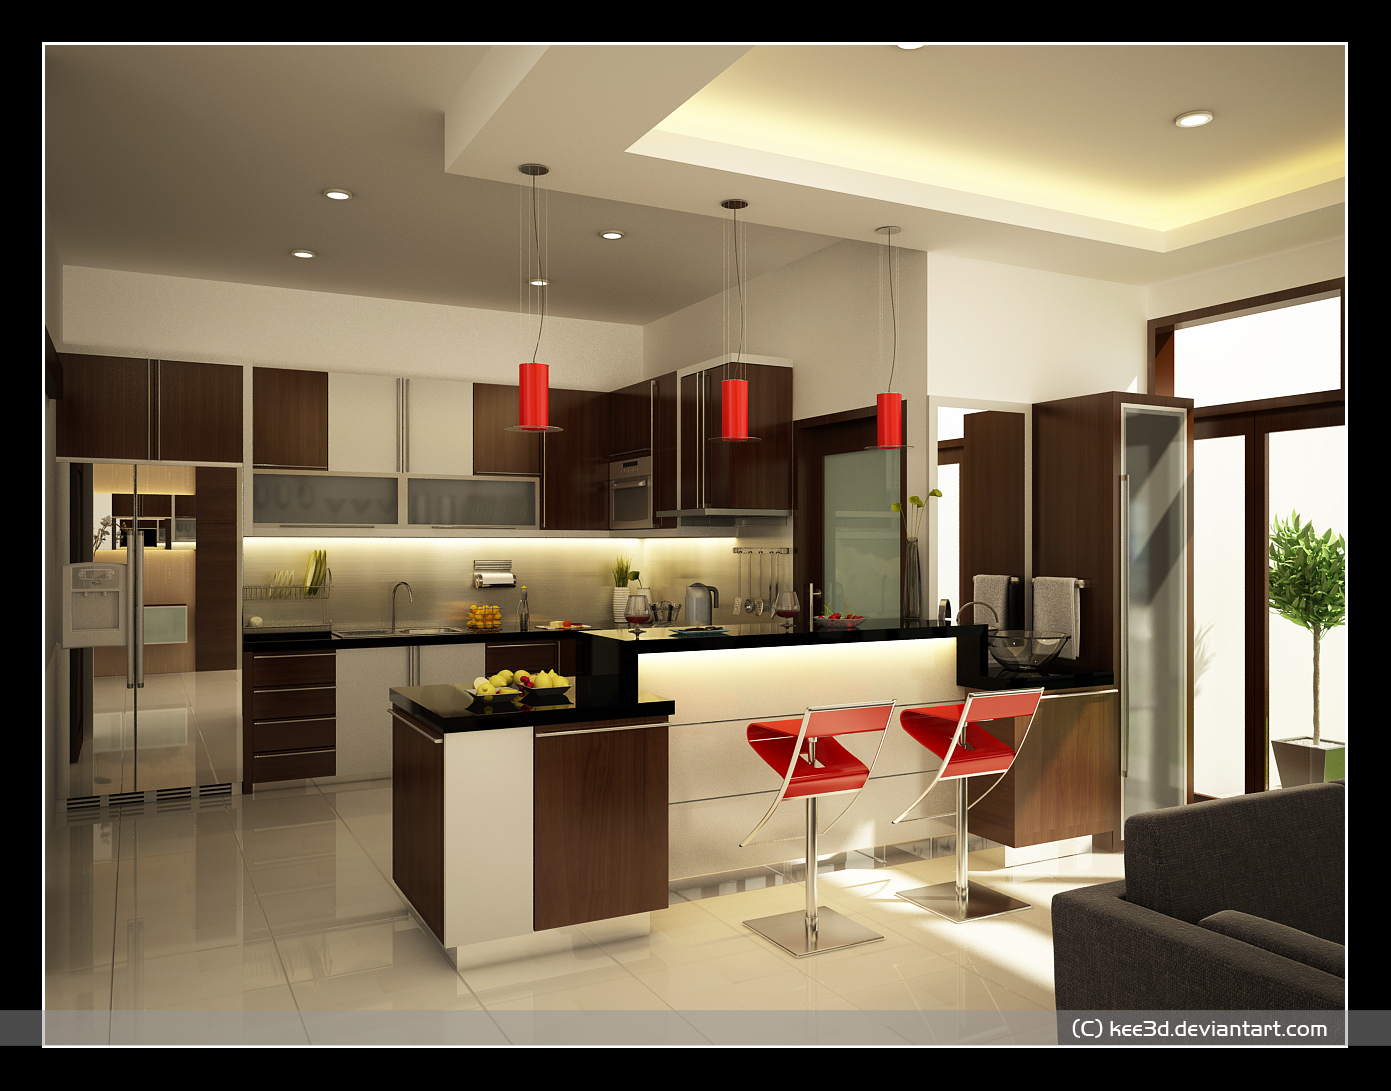 Home Interior Design & Decor: Kitchen Design Ideas